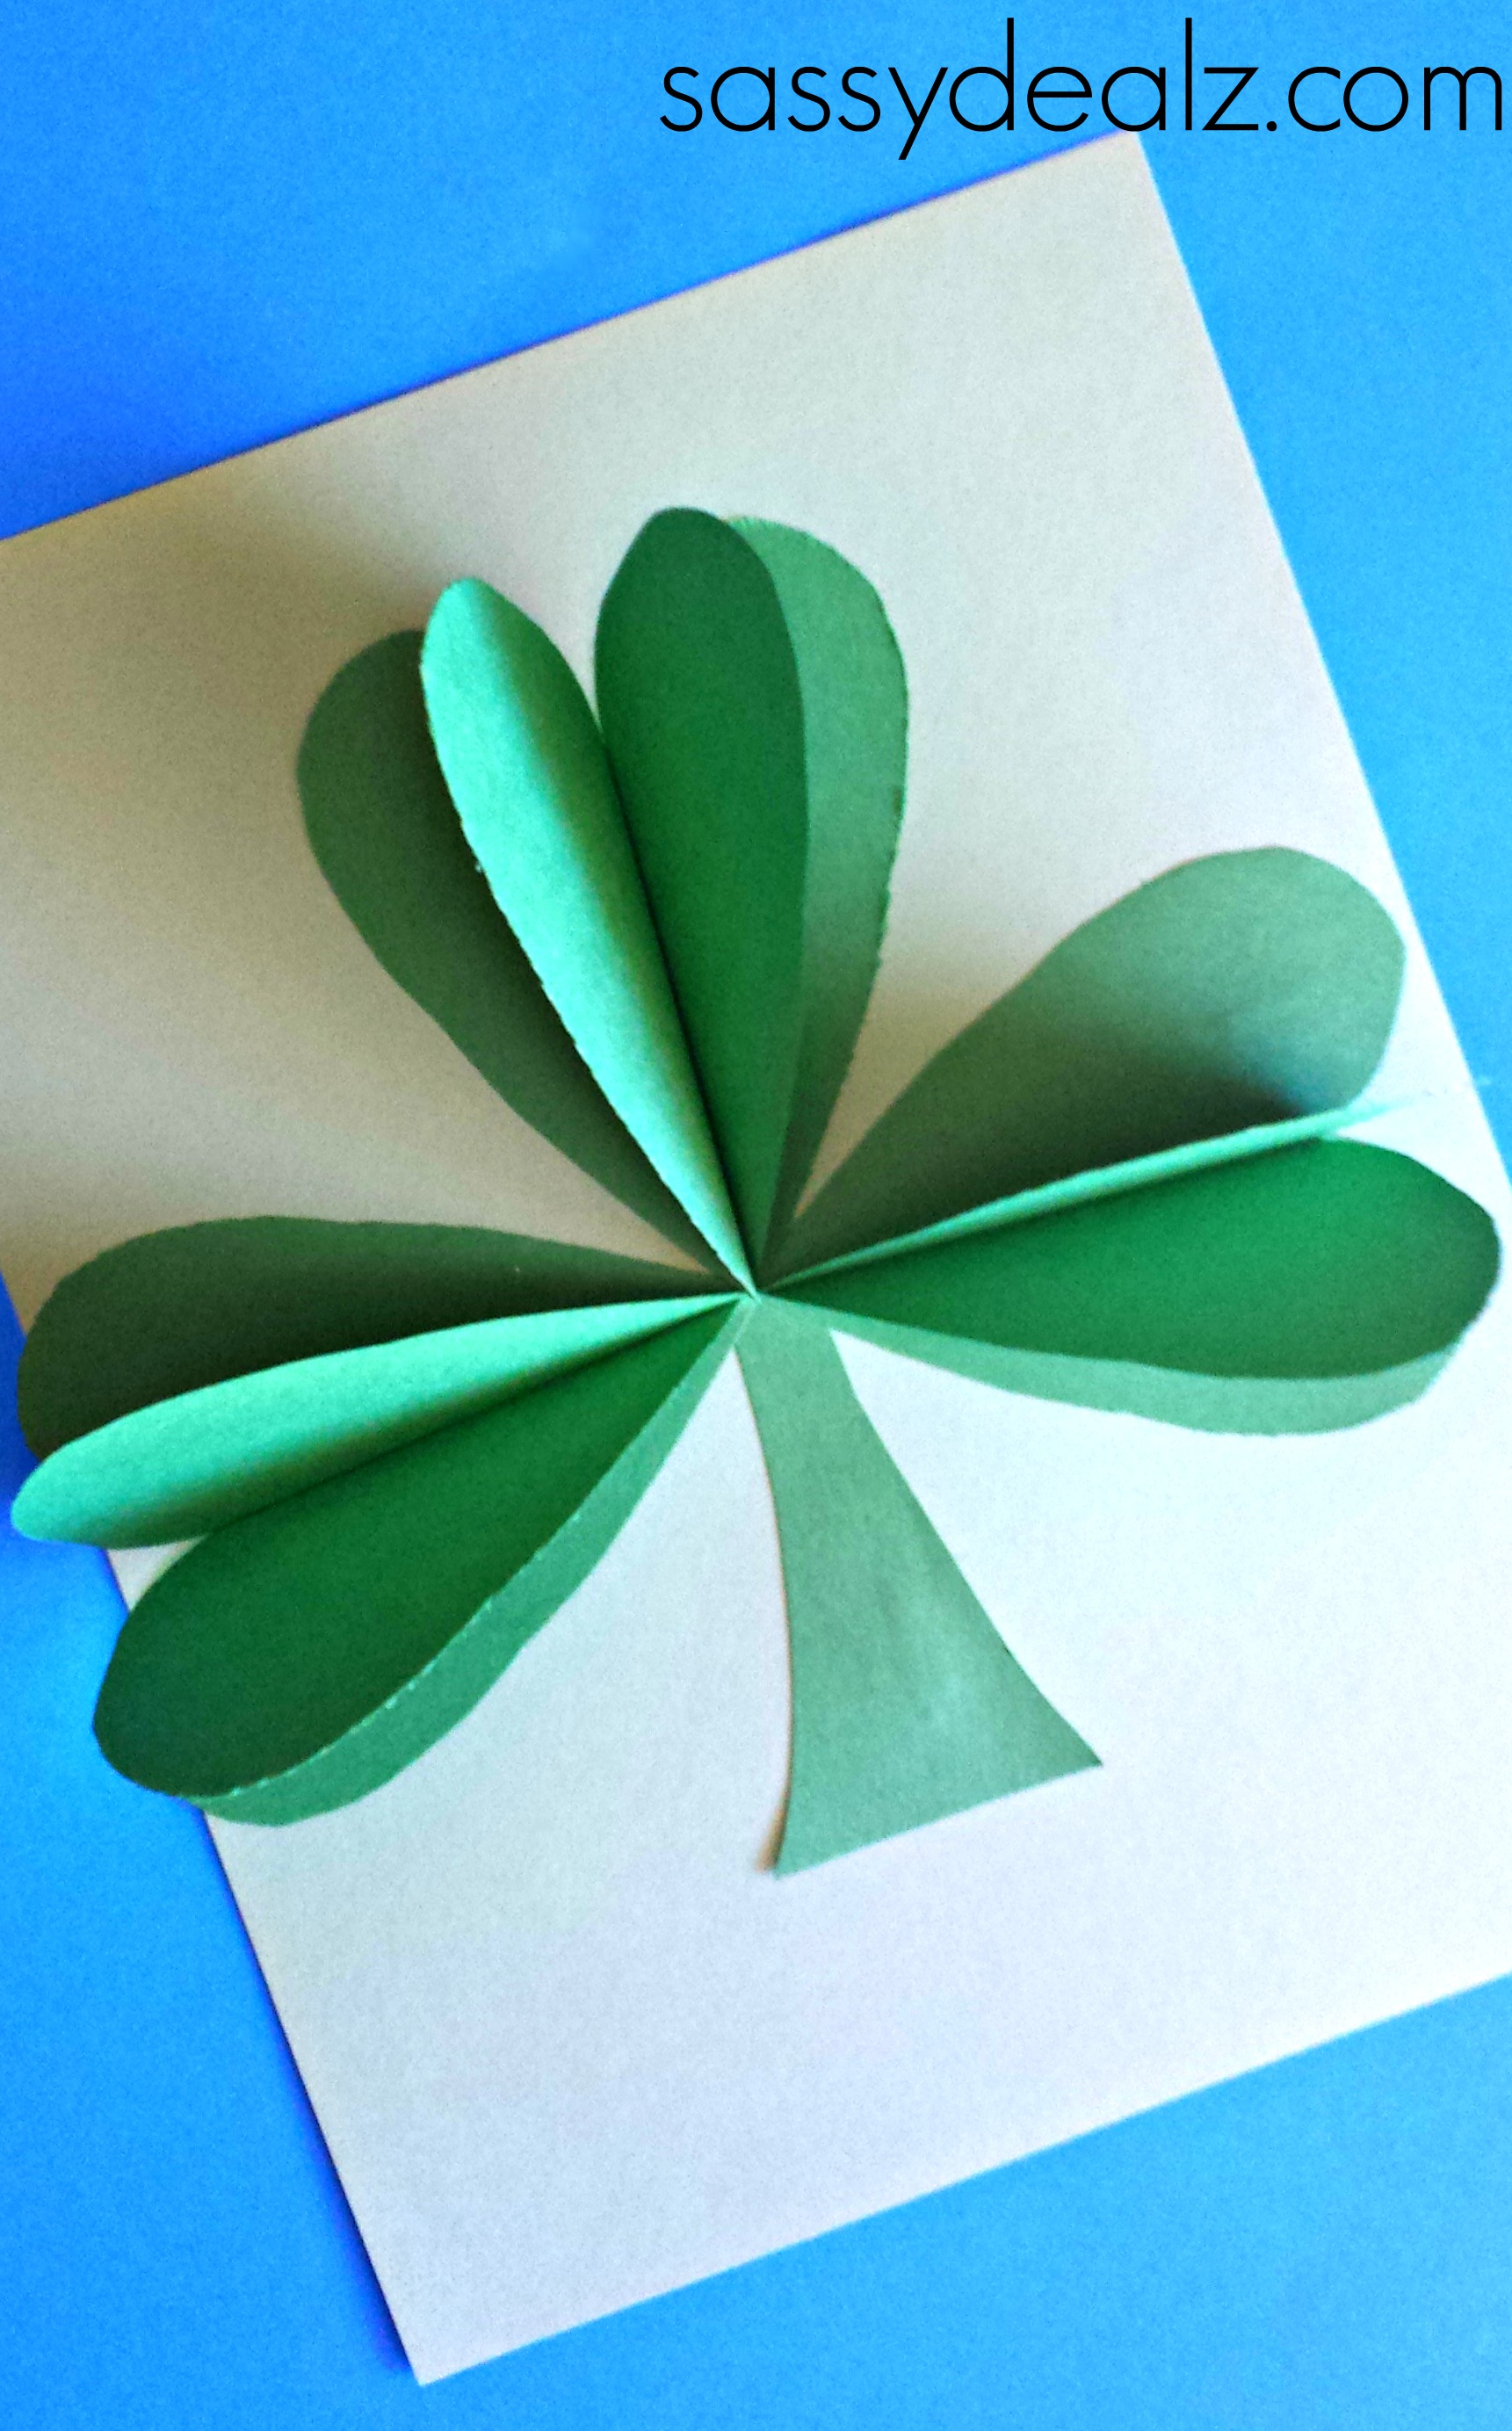 3D Paper Shamrock Craft For St. Patrick\u002639;s Day  Crafty Morning